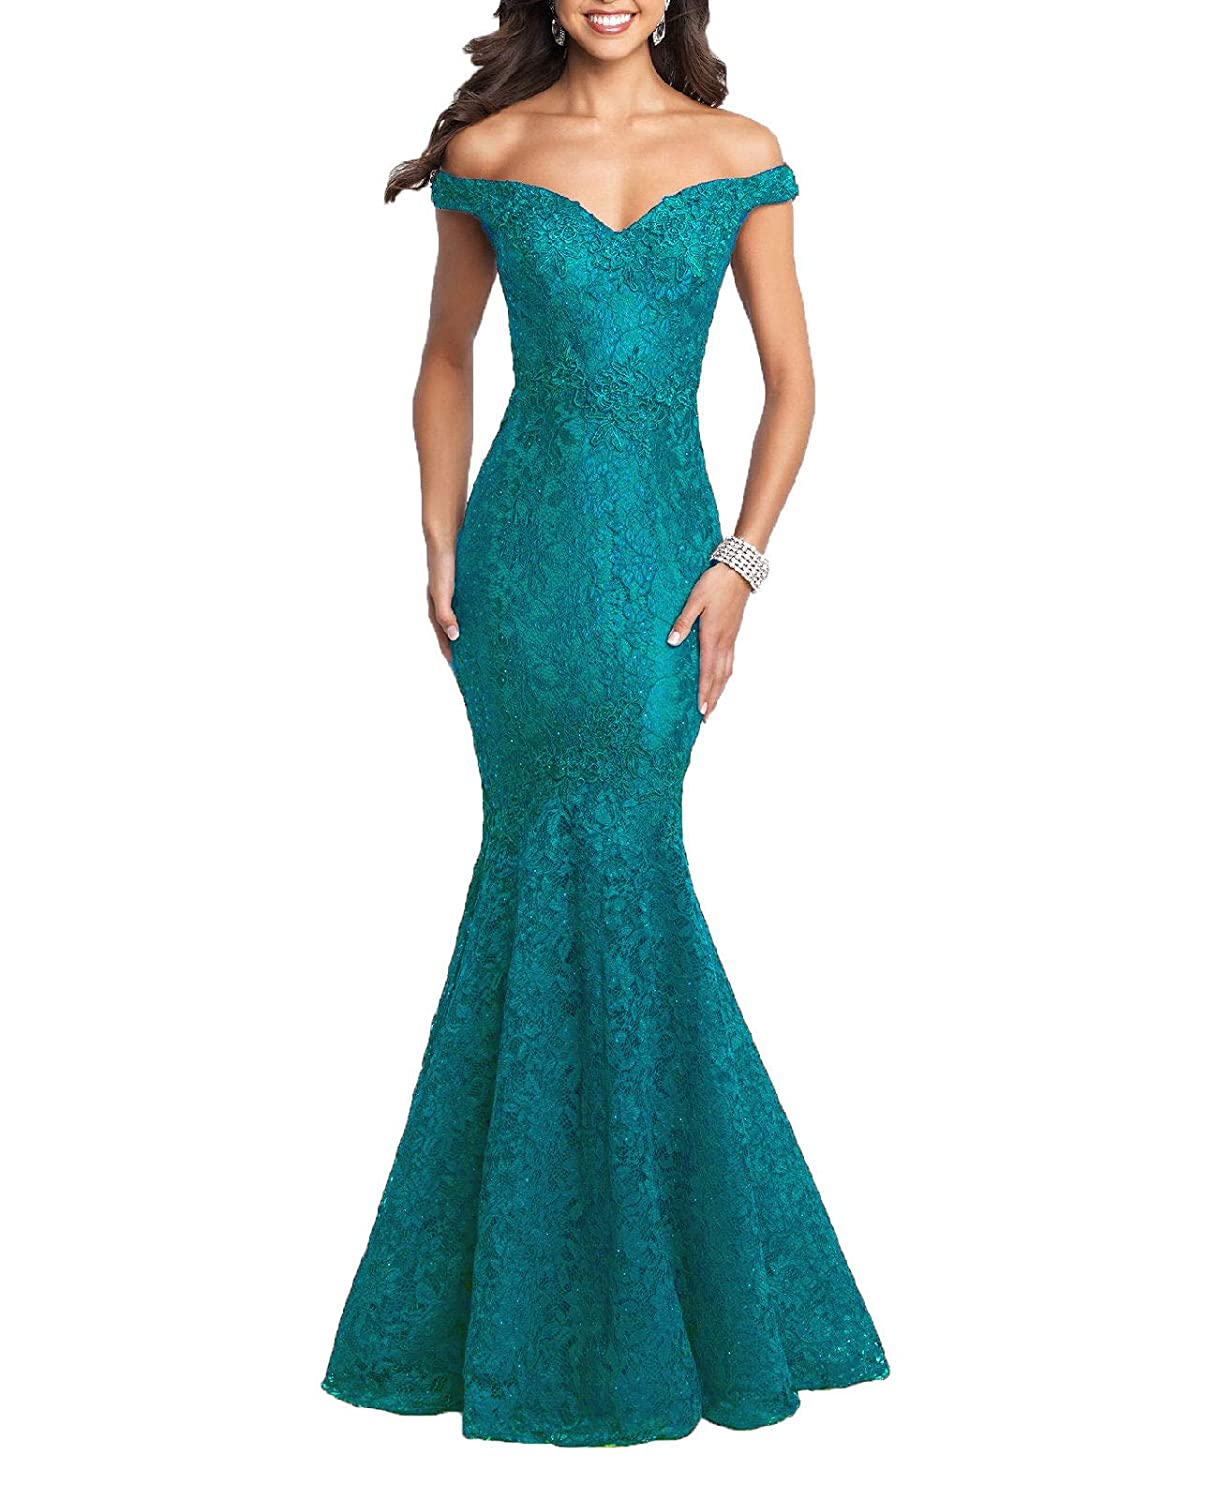 Dark Turquoise Wanshaqin Sexy Off The Shoulder Mermaid Prom Formal Dresses Bridesmaid Gown Evening Cocktail Dress for Events Party